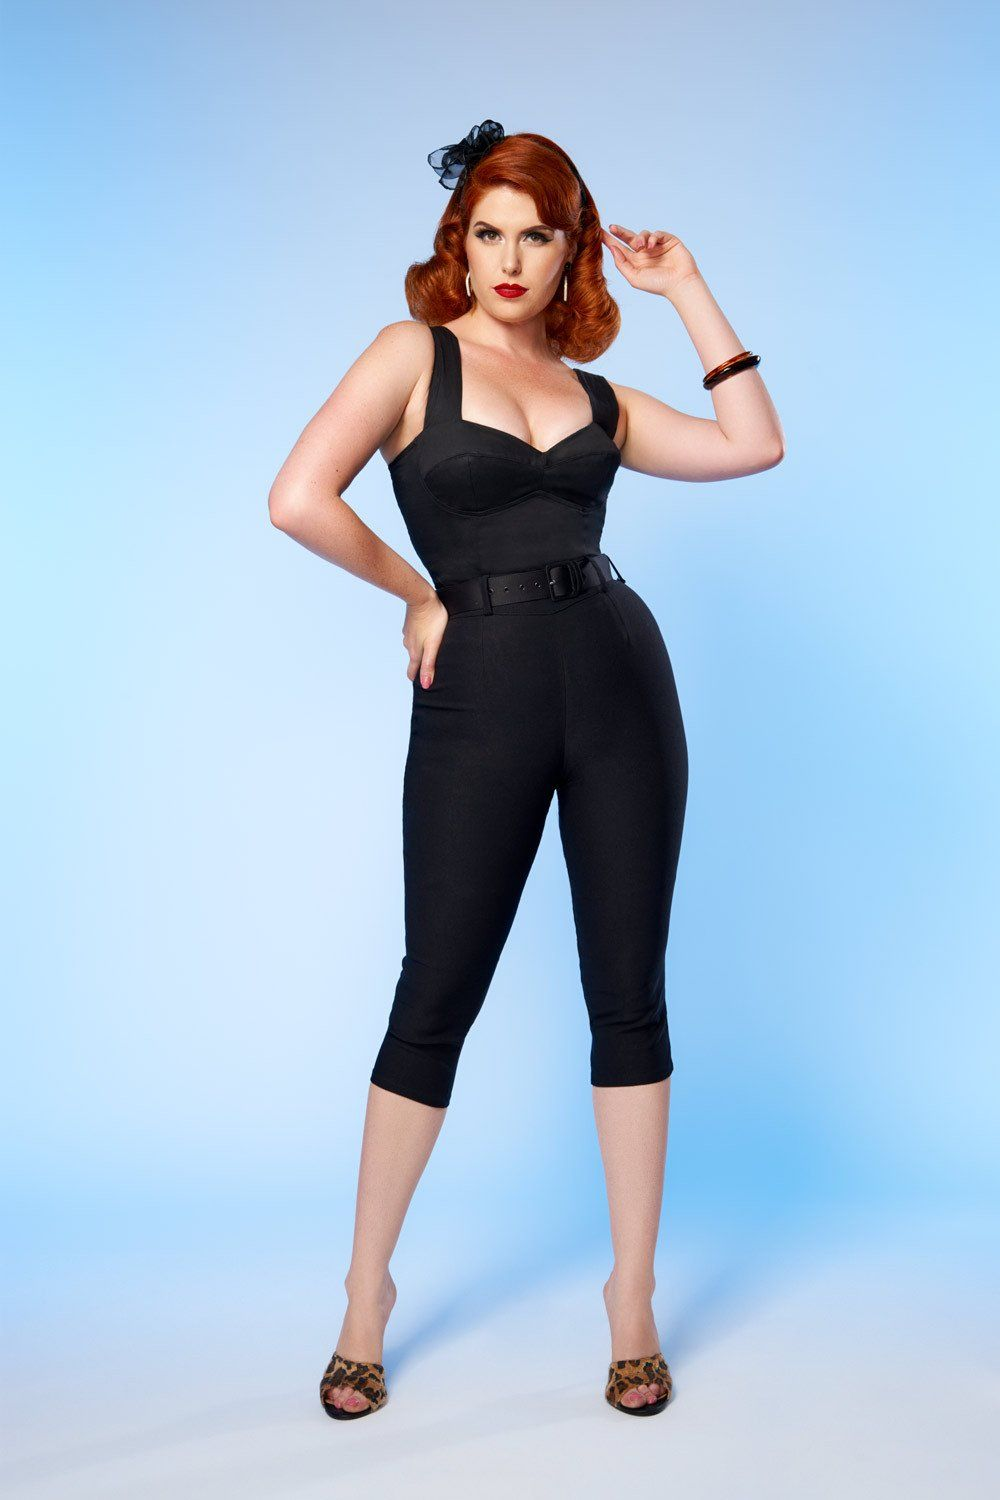 c5e34042ea7 Traci Lords - Allison Bad Girl Stretch Capri Pants with Heart Pockets in  Black